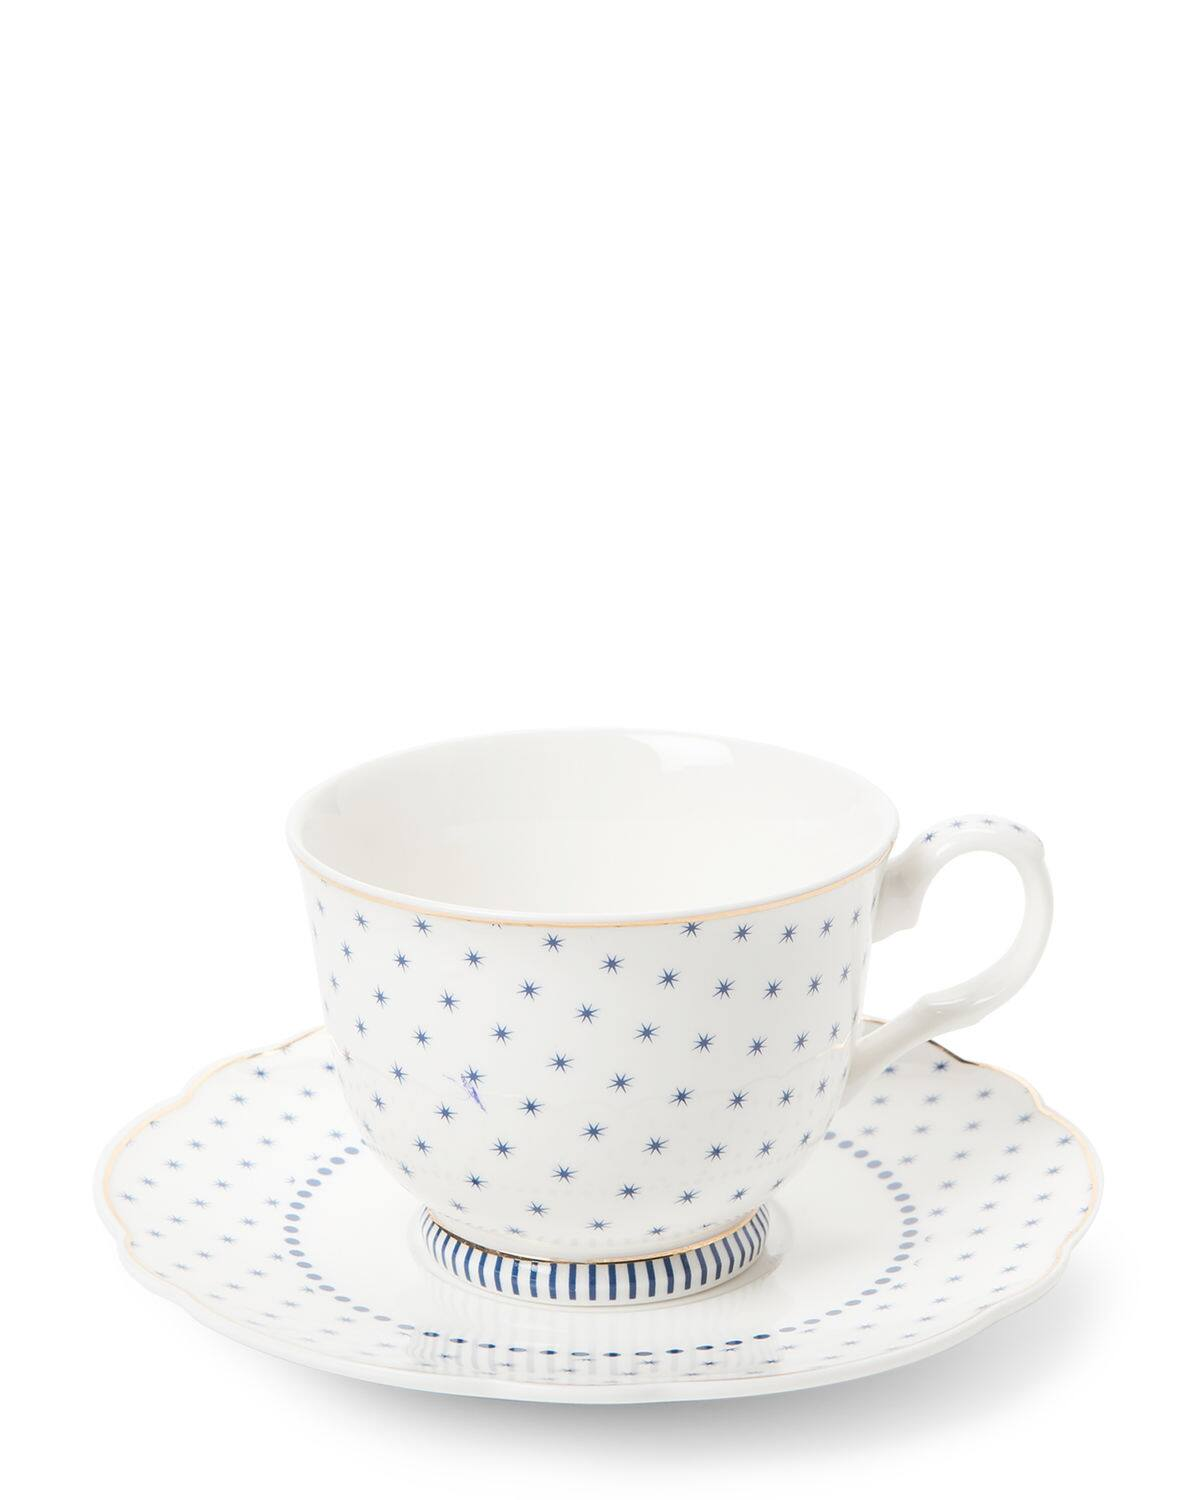 Century 21: Teacup & Saucer Set $6.99, French Press $7.99, Free Shipping $10+